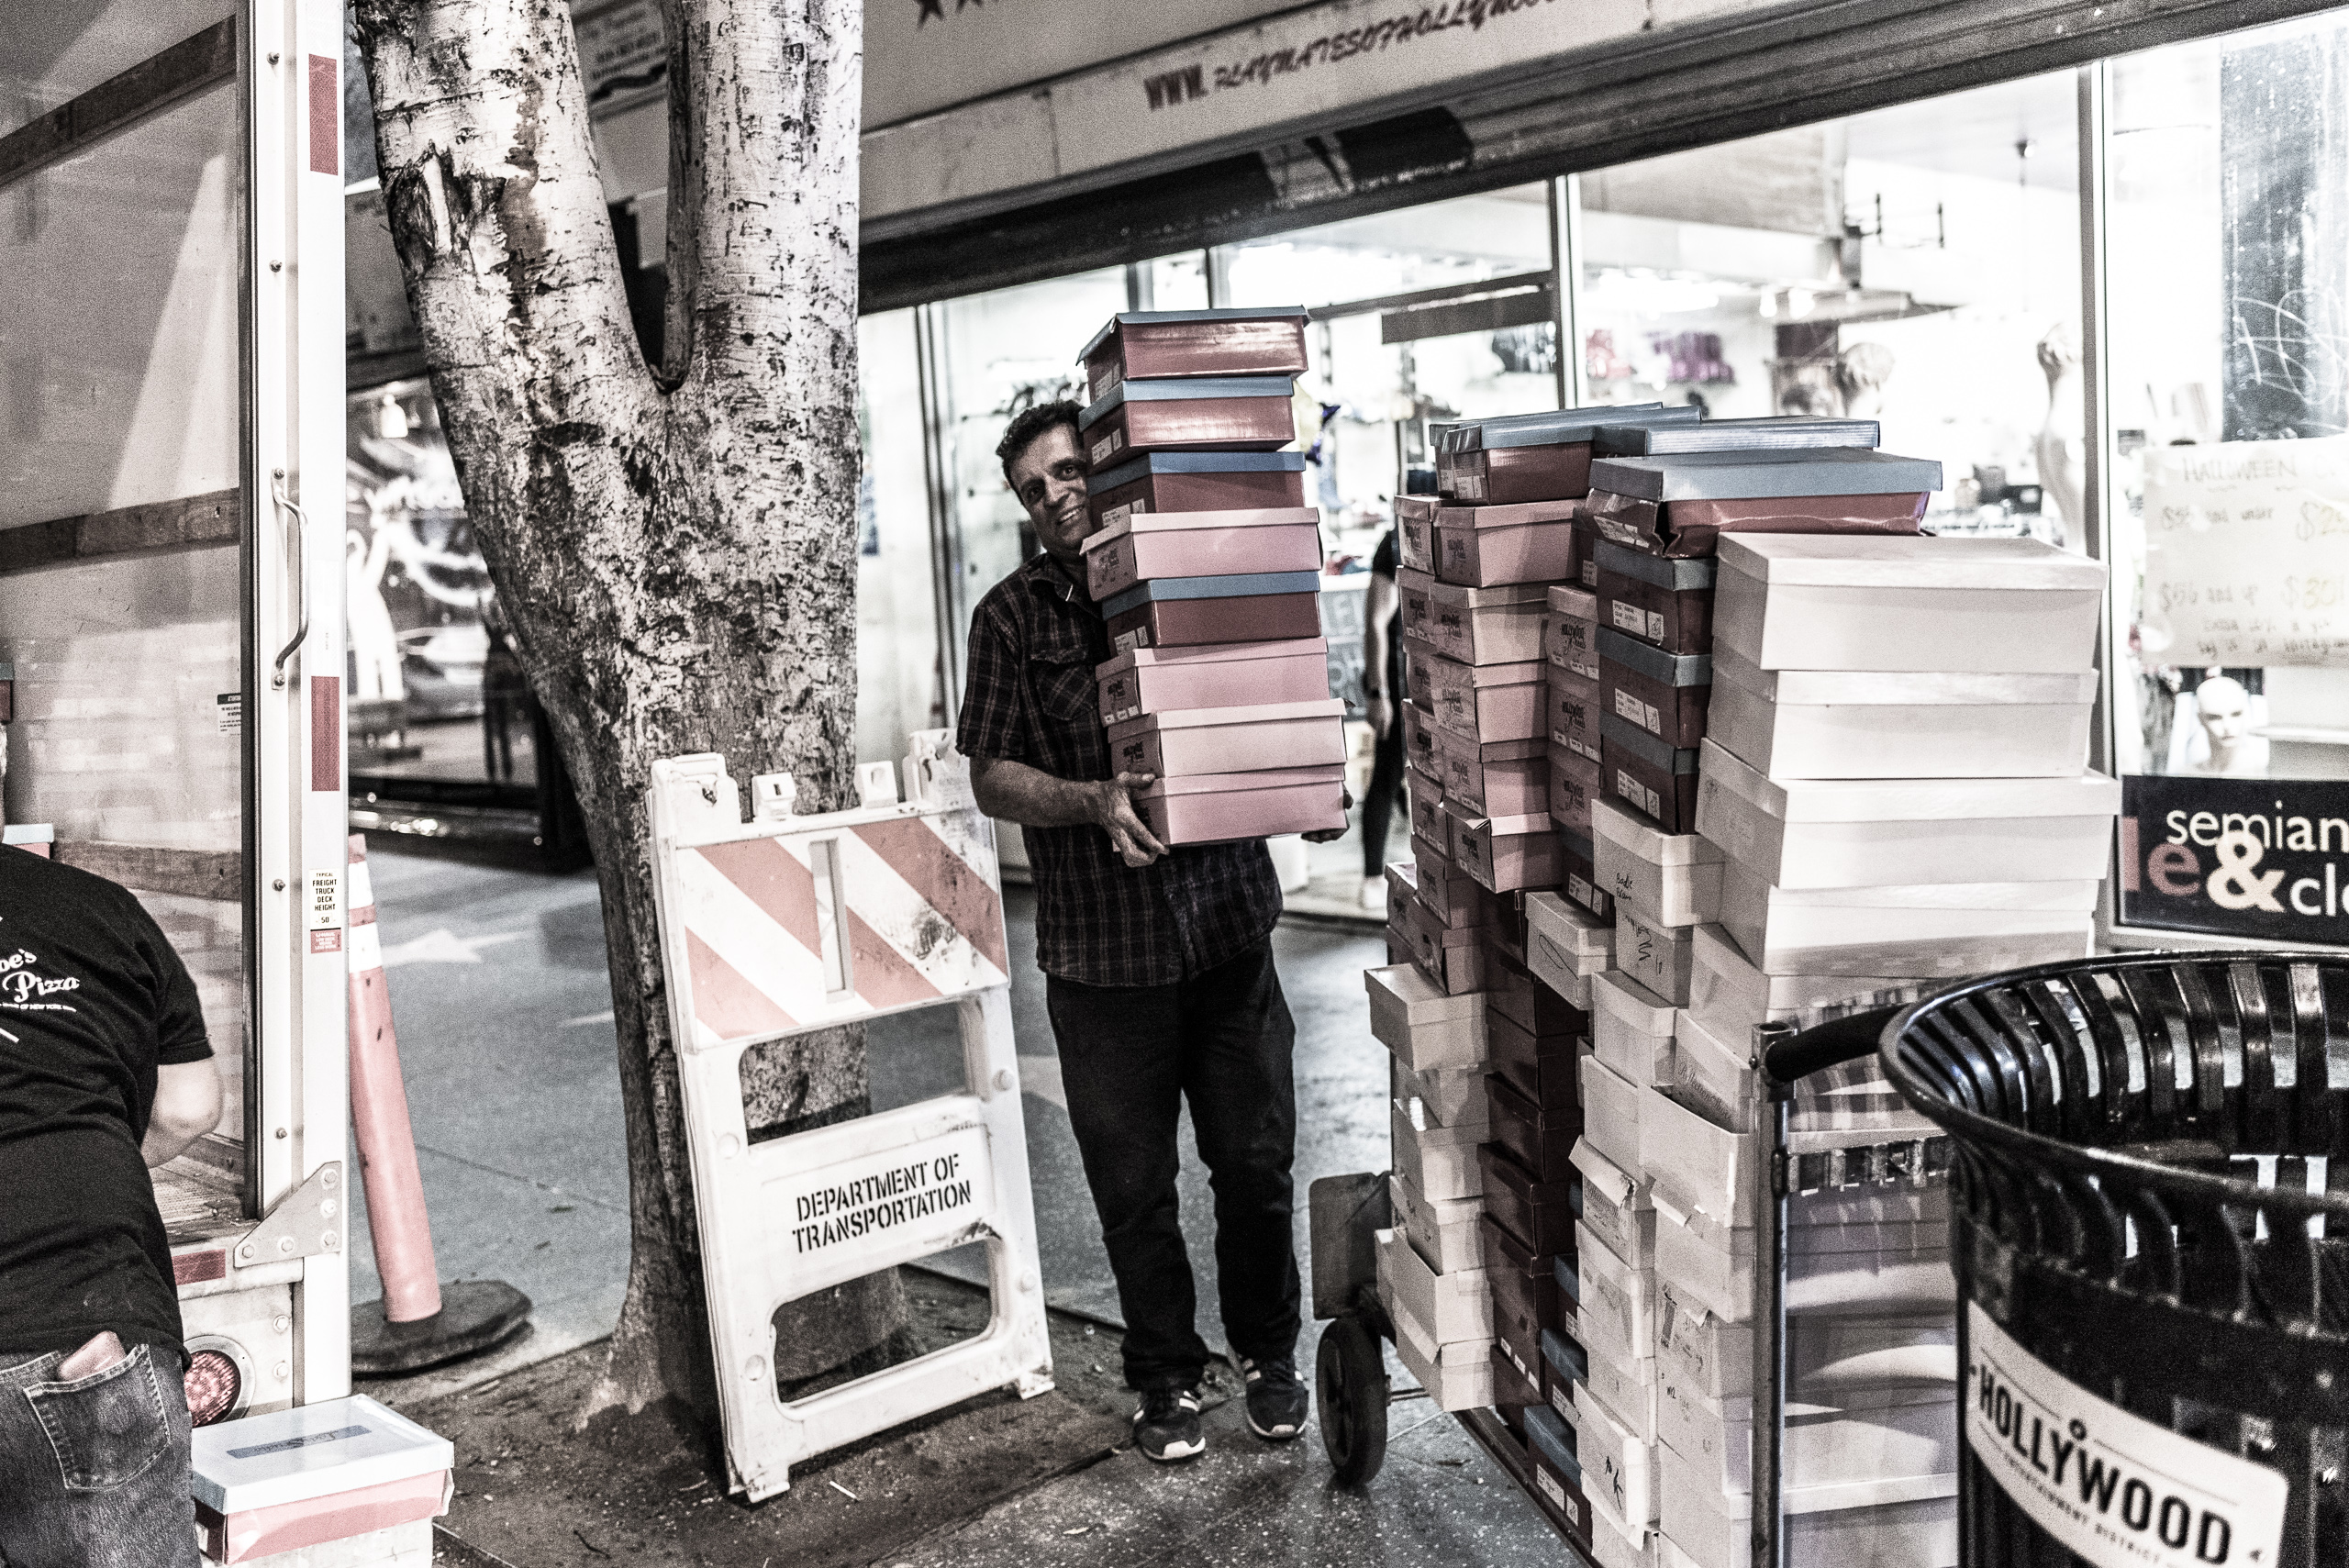 a guy carries a 10-foot-tall stack of shoe boxes out of the Playmates store at 6438 Hollywood Blvd, Hollywood 90028, and loads them into a moving van.